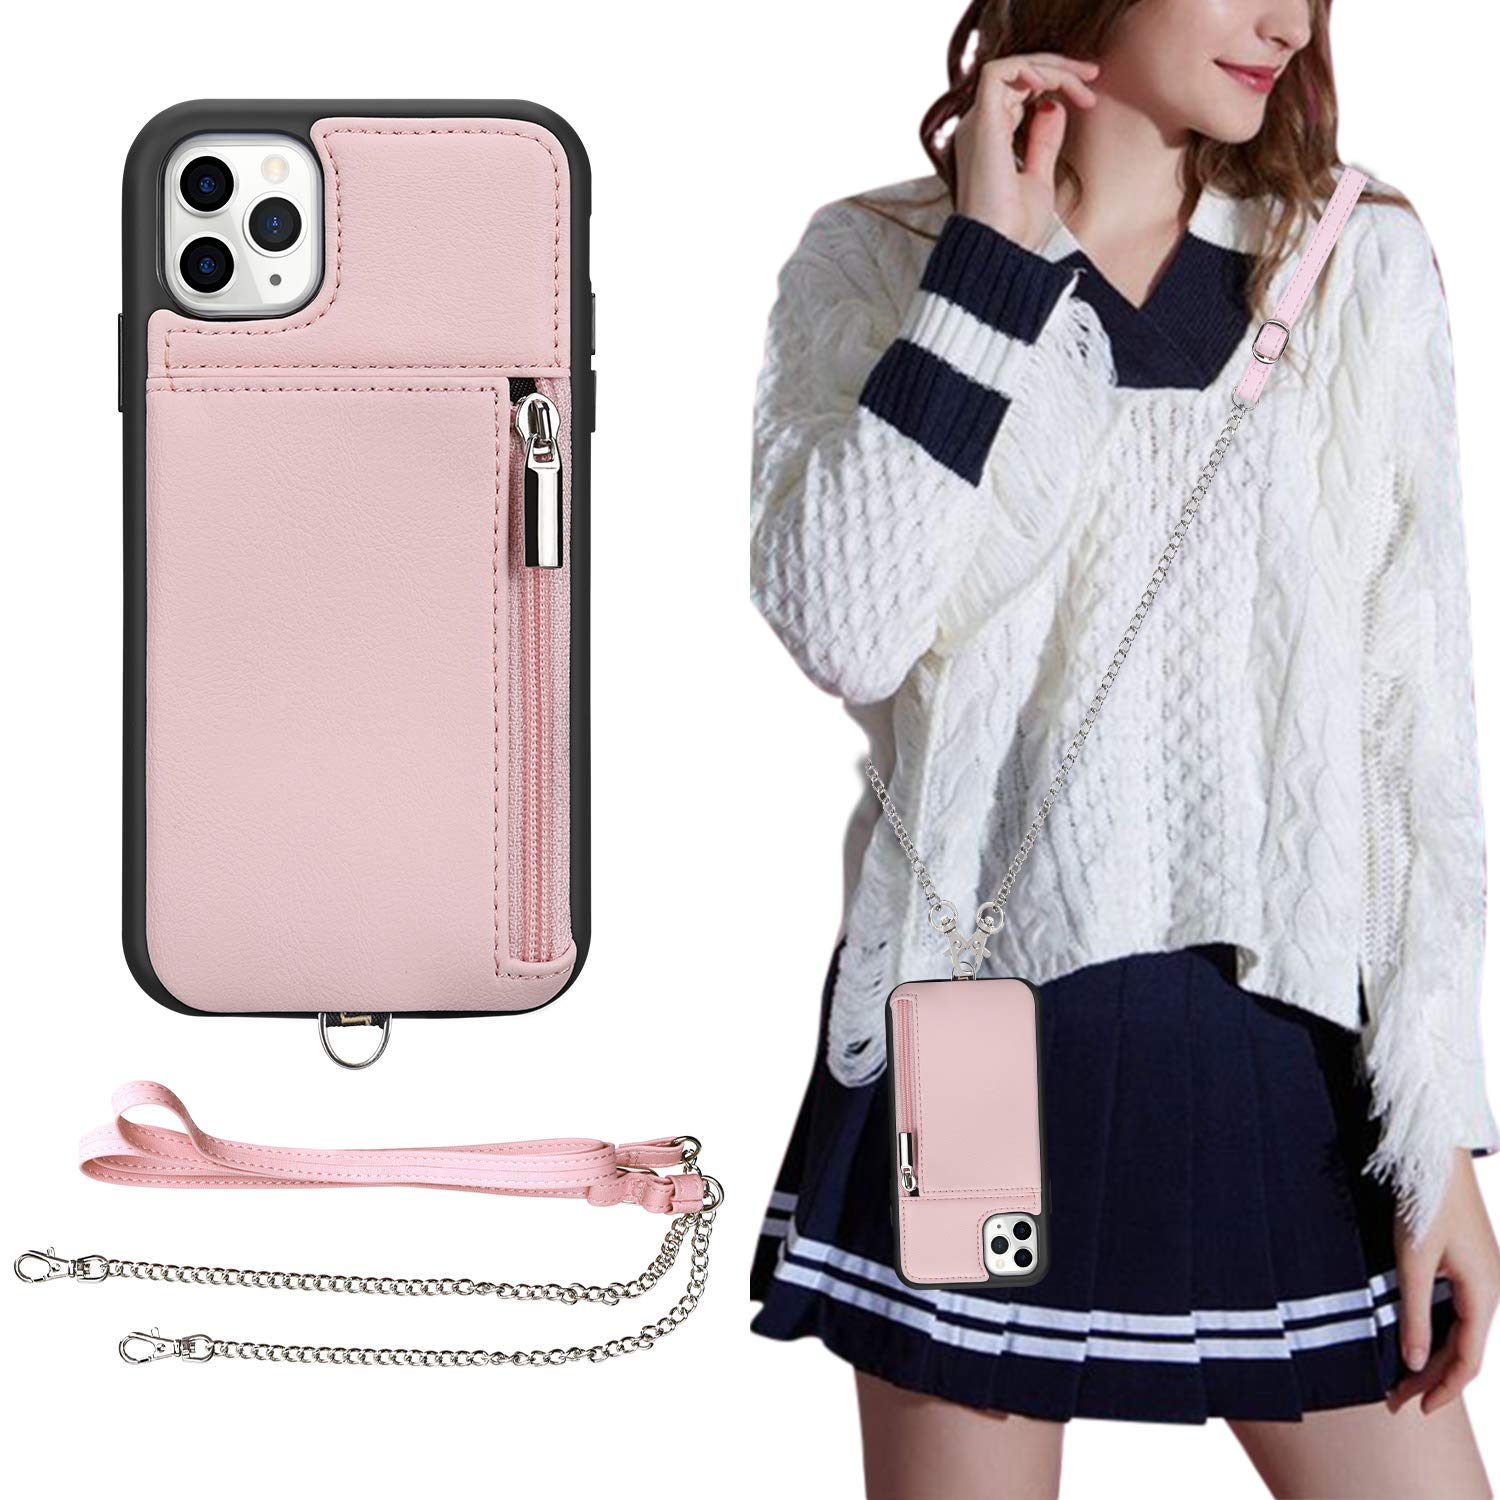 iPhone 11 Pro Max Wallet Case,iPhone 11 Pro Max Crossbody Case,JISON21 iPhone 11 Pro Max 6.5'' Case with Credit Card Holder Slot Zipper Handbag Purse, Protective Leather Case(Pink)